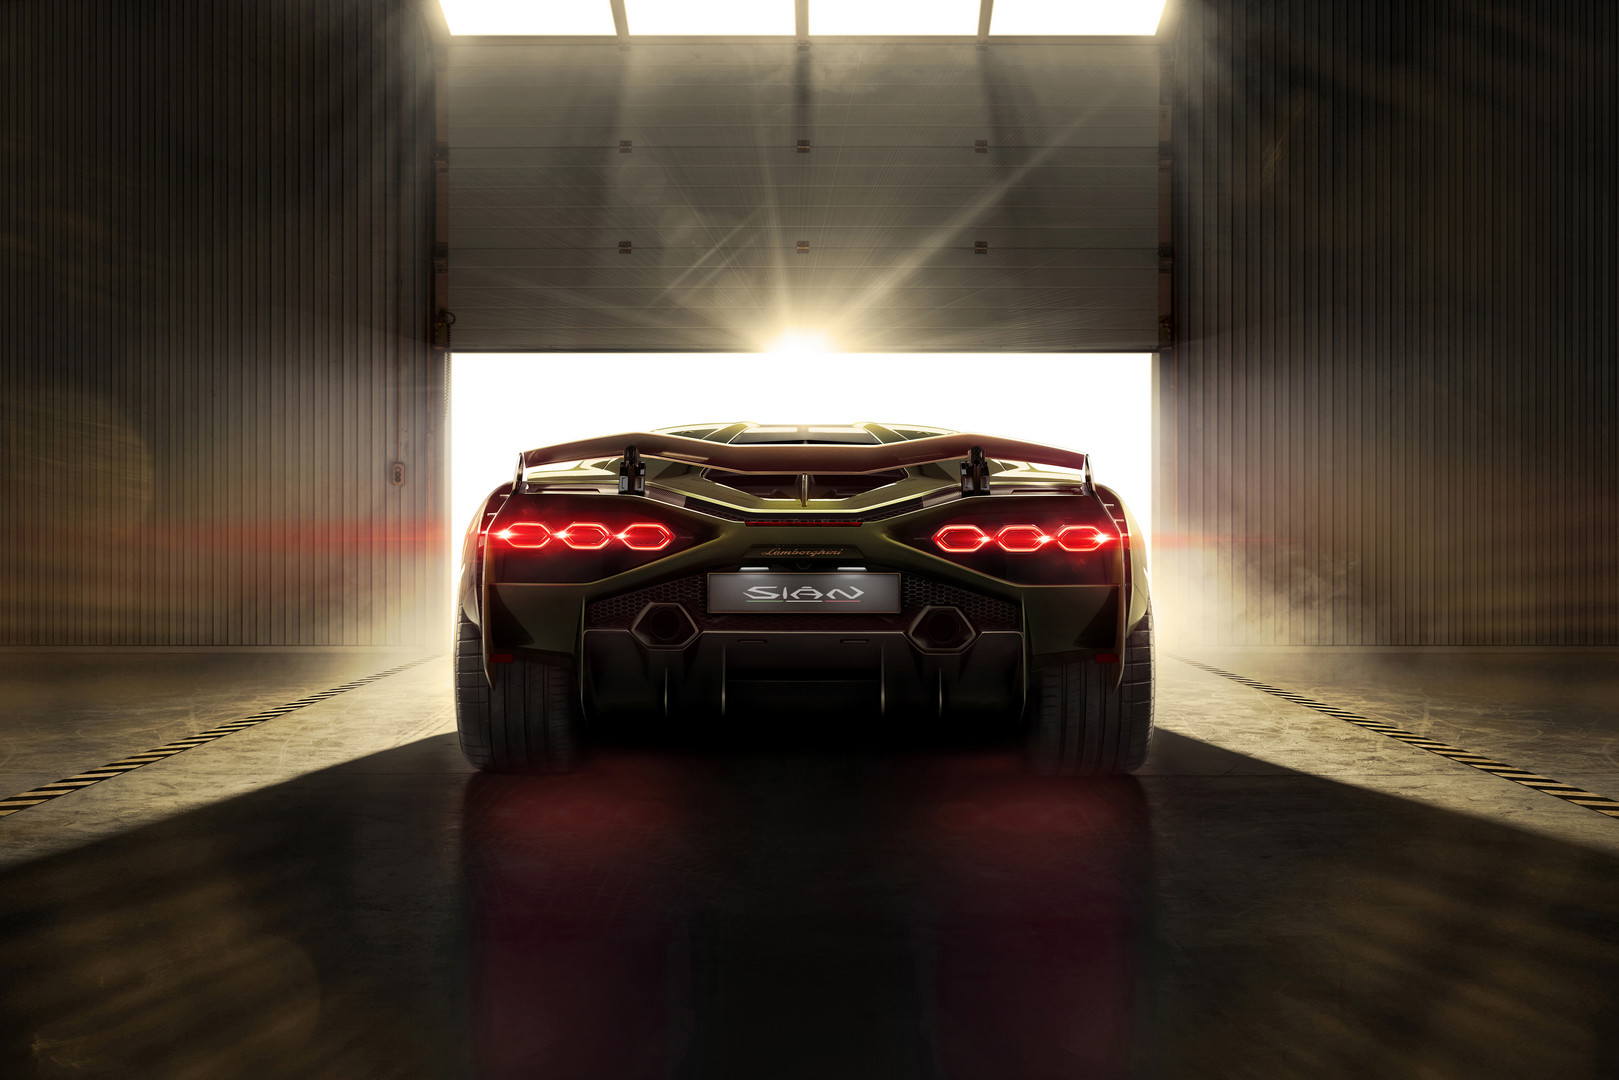 Lamborghini Sian Rear Lights